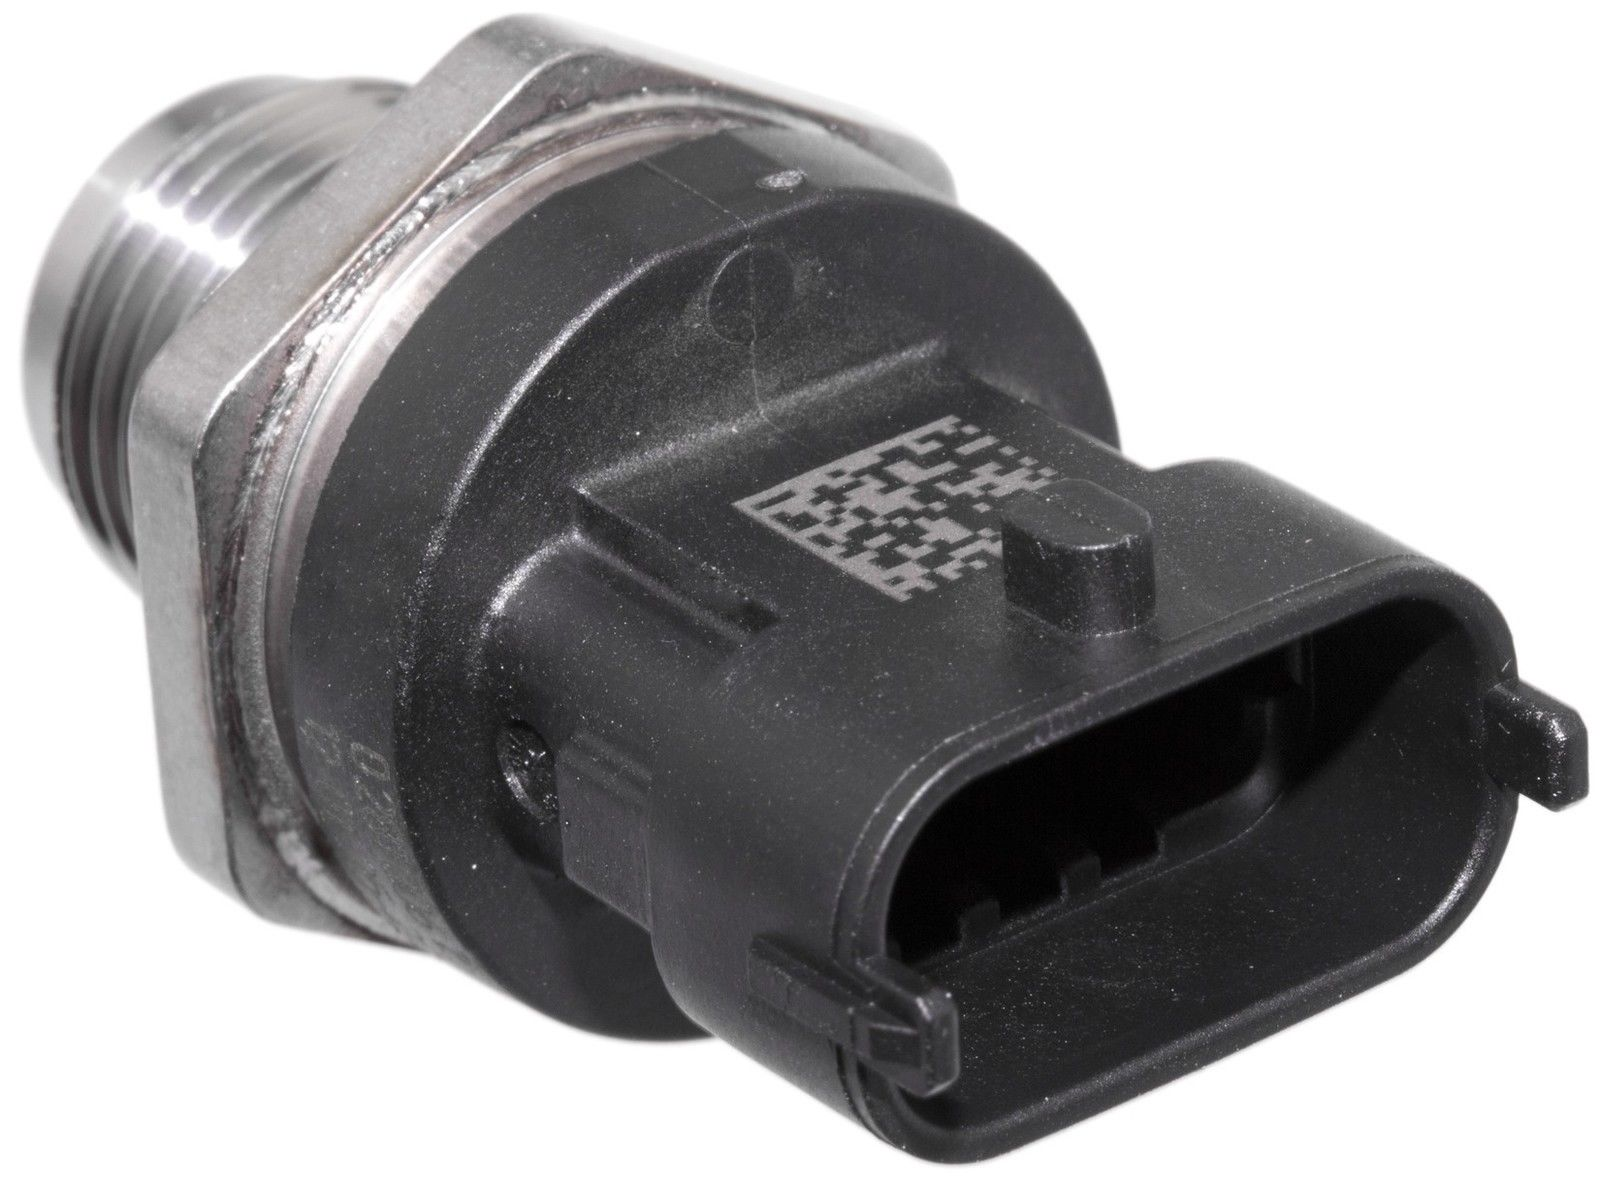 Bosch 5297640 Fuel Rail Pressure Sensor For 07.5-12 6.7L ISB Dodge Ram Cummins Diesel